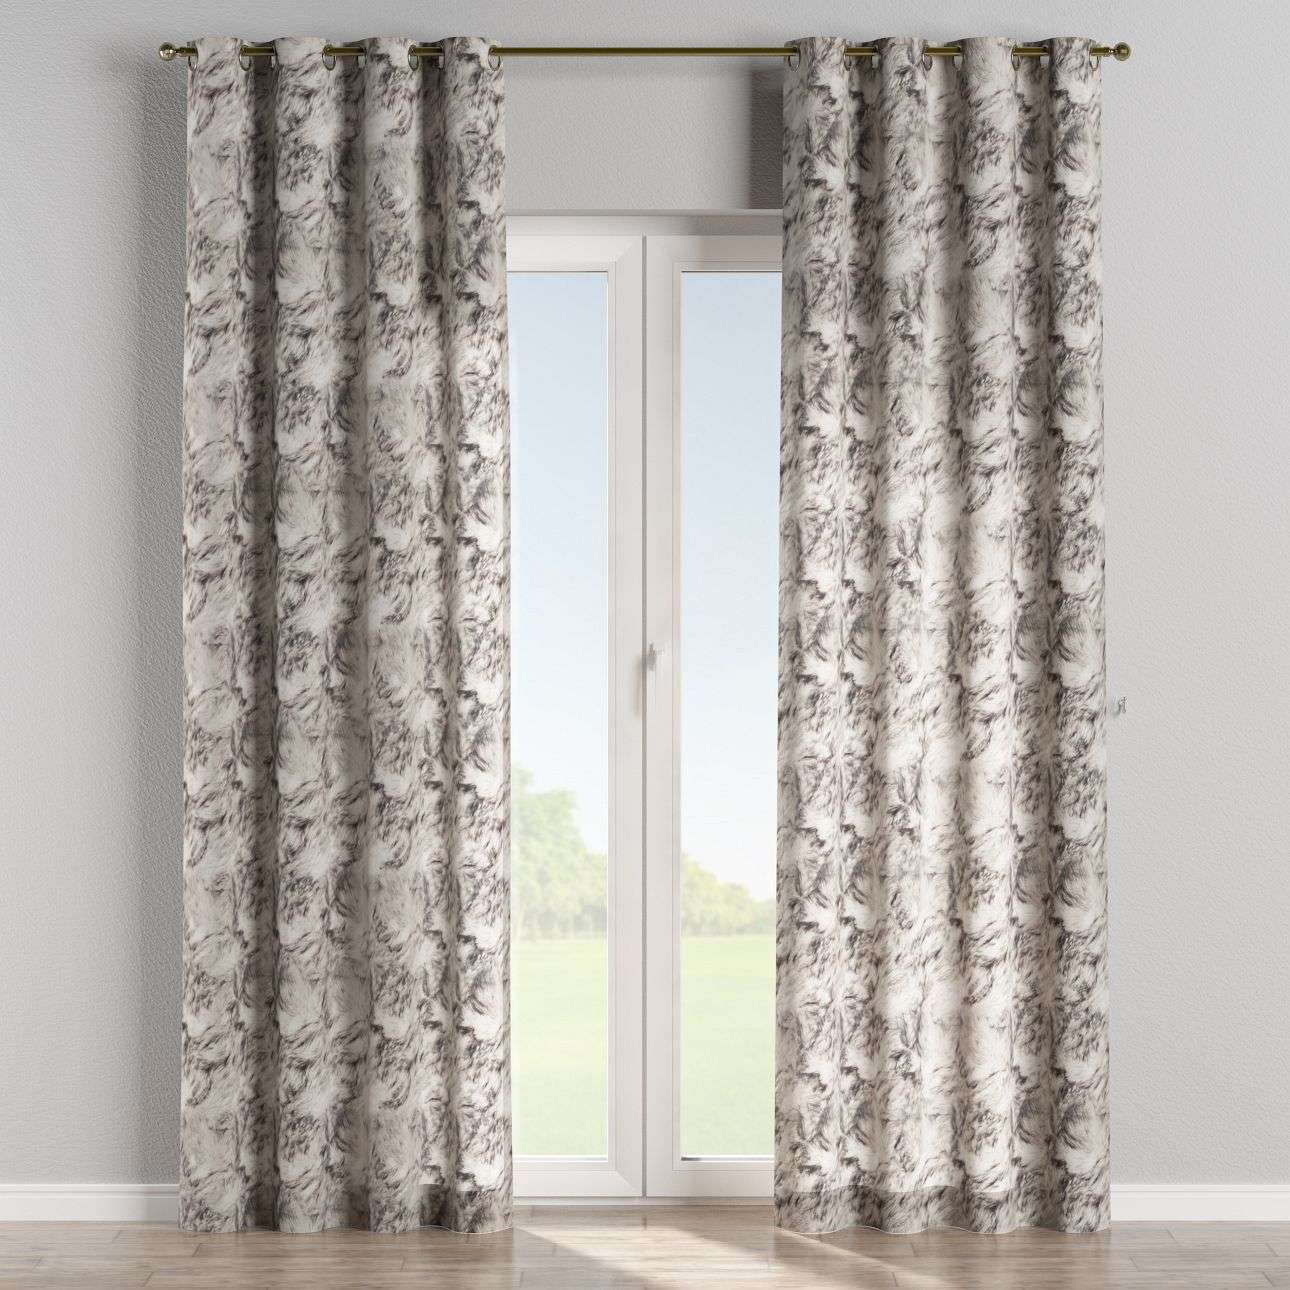 Eyelet curtains 130 x 260 cm (51 x 102 inch) in collection Freestyle, fabric: 140-82